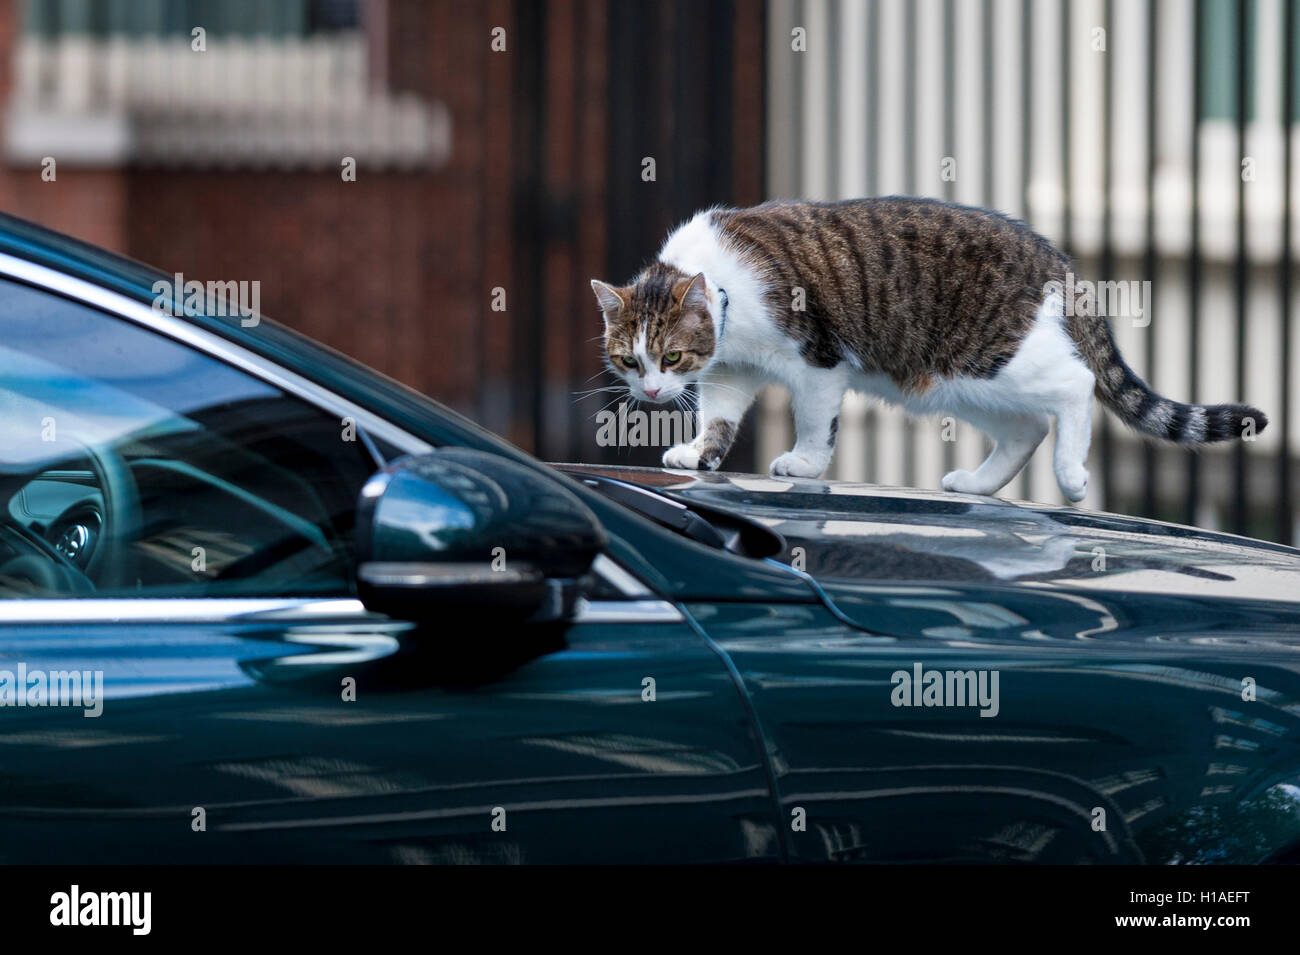 London, UK. 22nd Sep, 2016.  Larry the cat climbs onto a ministerial car outside number 10 Downing Street prior - Stock Image